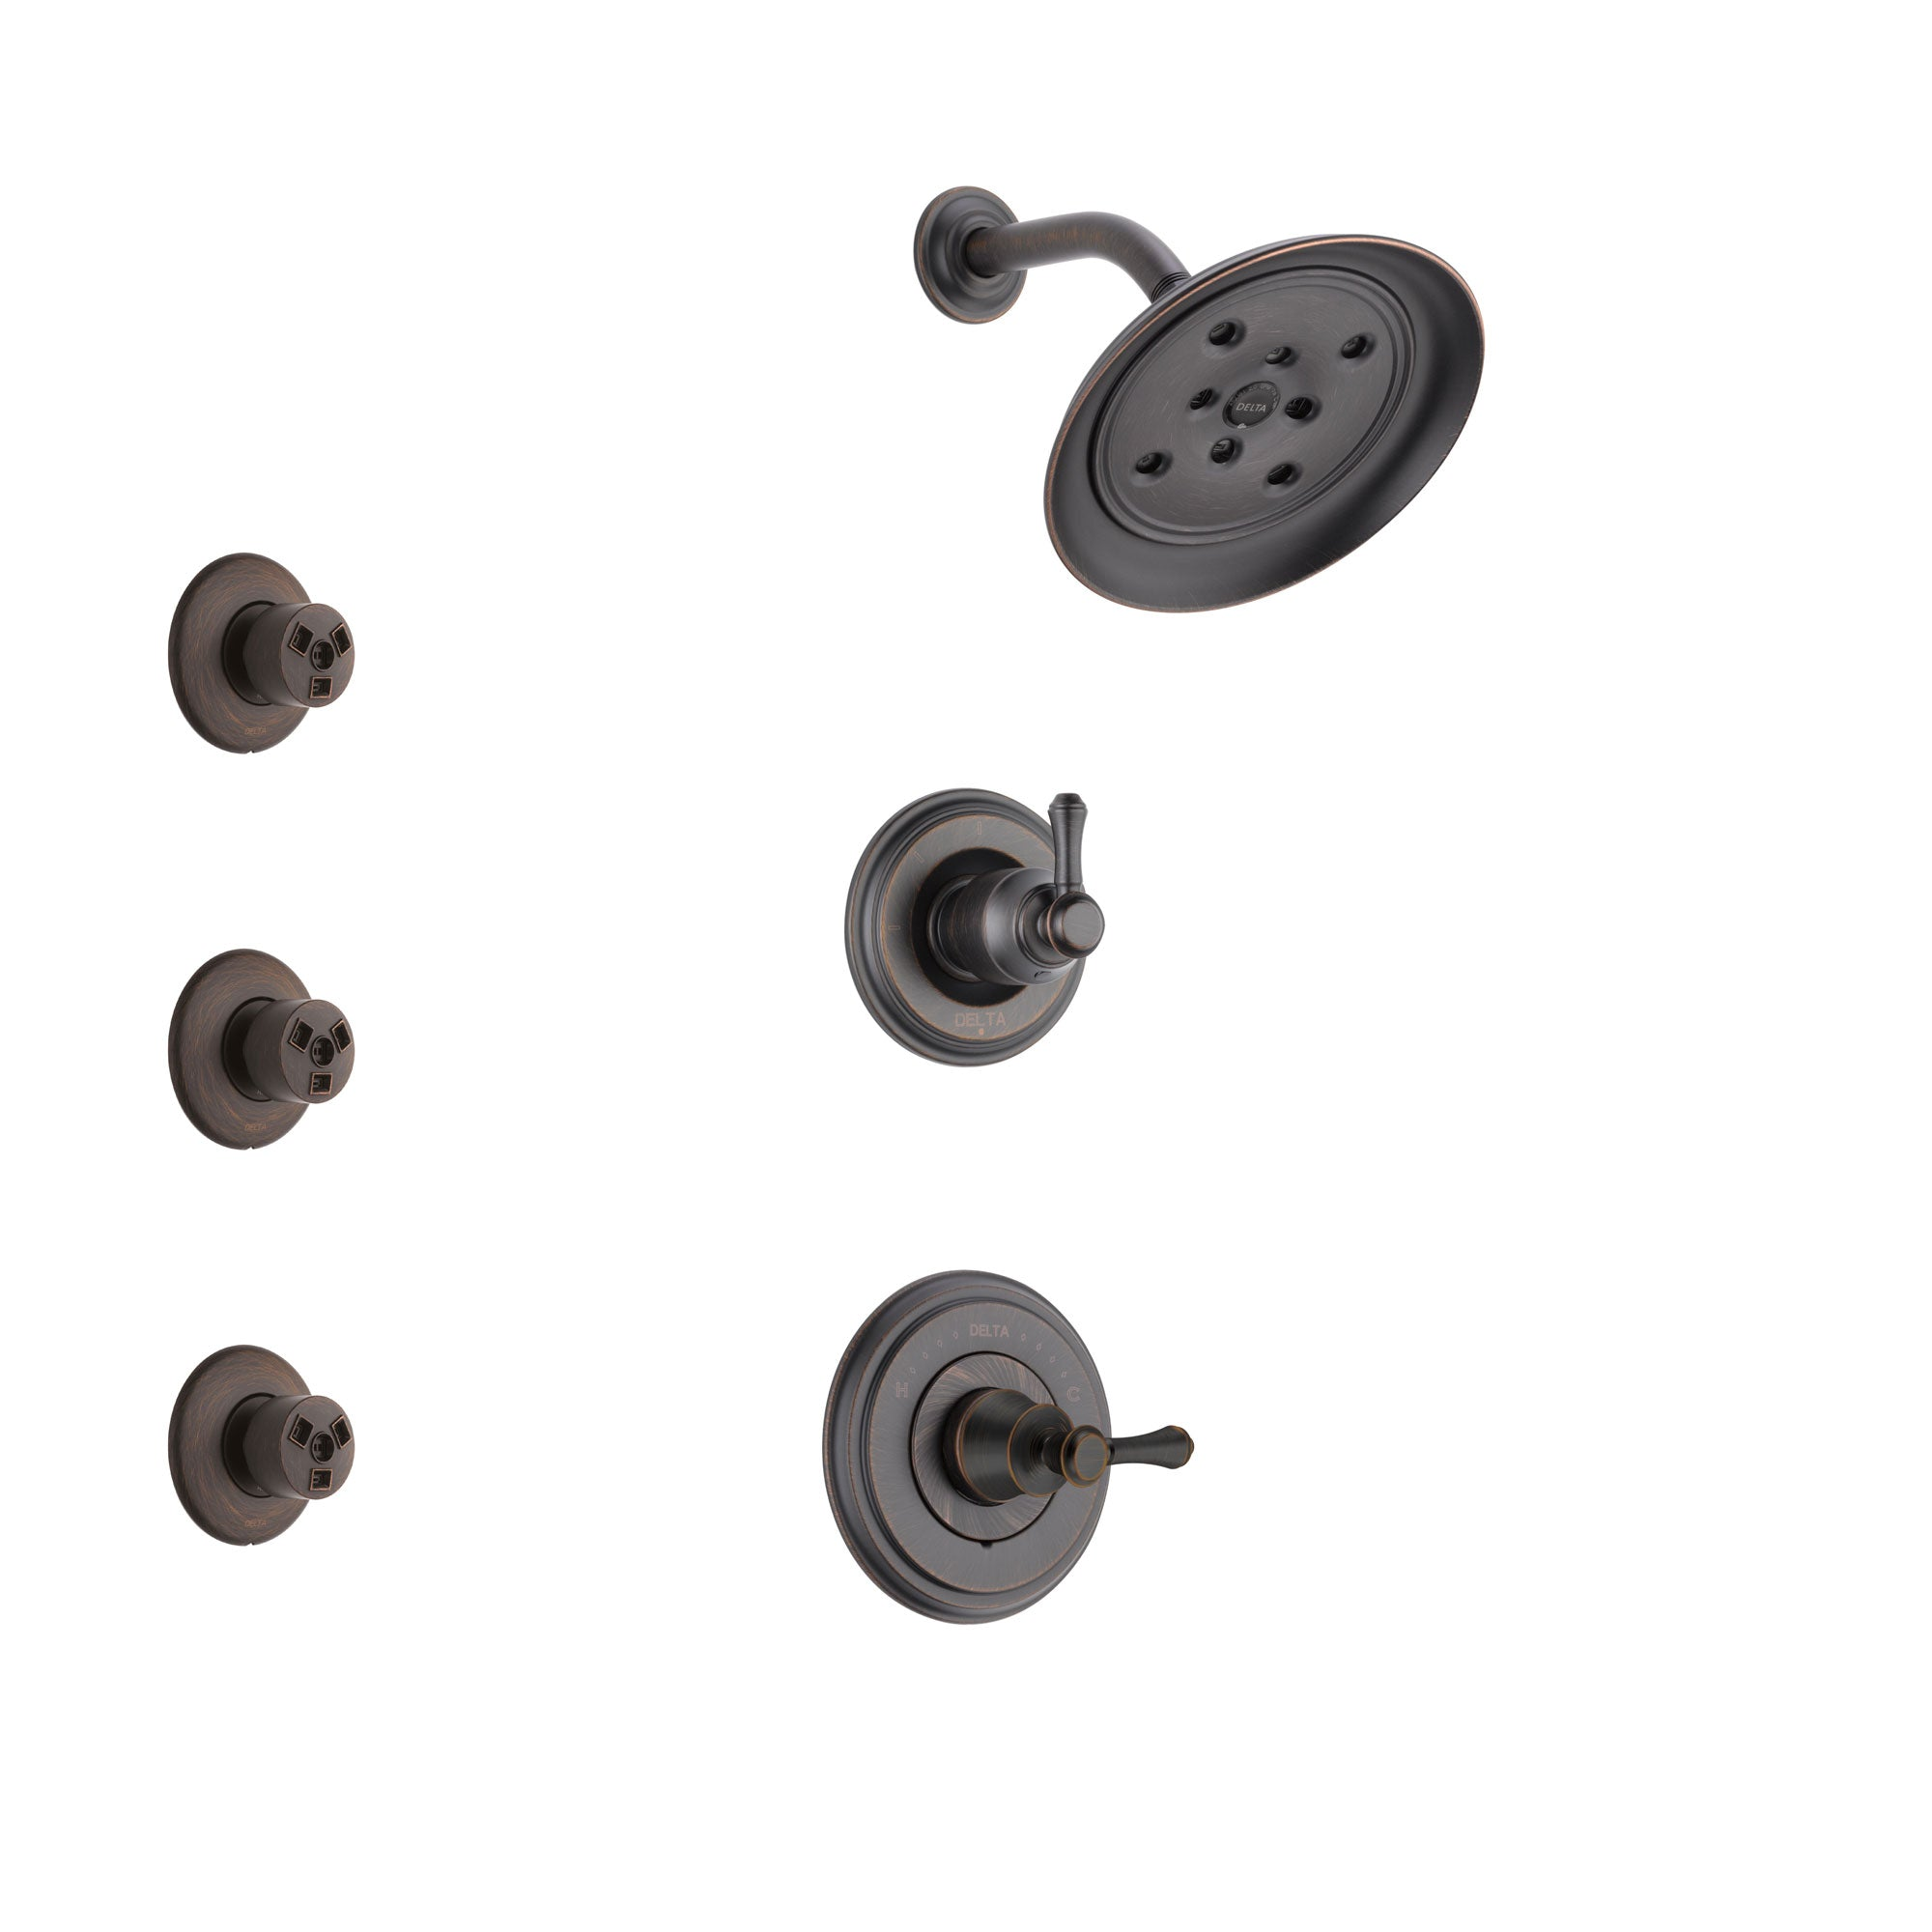 Delta Cassidy Venetian Bronze Finish Shower System with Control Handle, 3-Setting Diverter, Showerhead, and 3 Body Sprays SS142973RB2